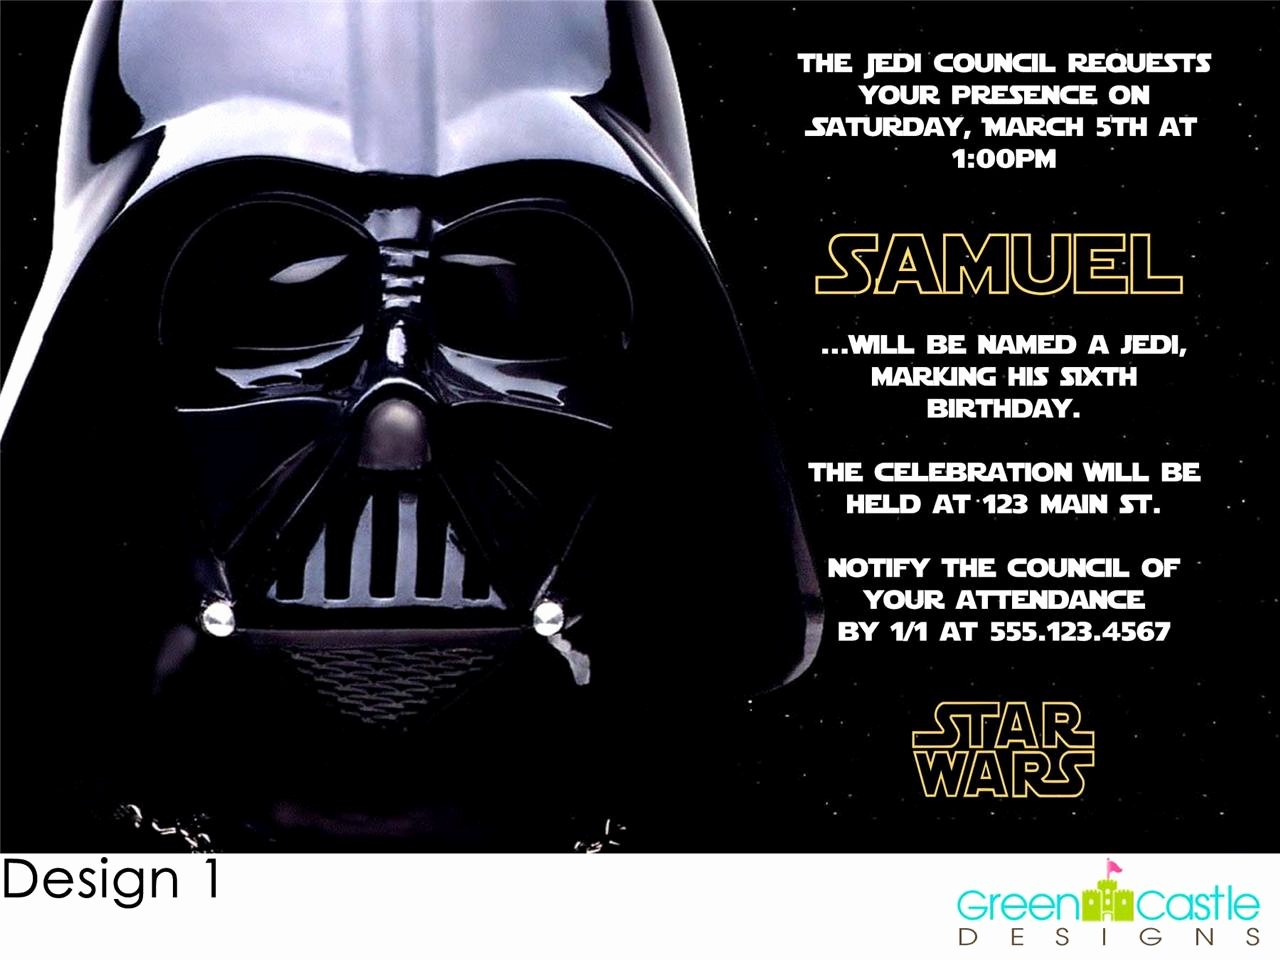 Stars Wars Birthday Invitations Awesome 20 Star Wars Invitations Darth Vader Custom Birthday Party Invites